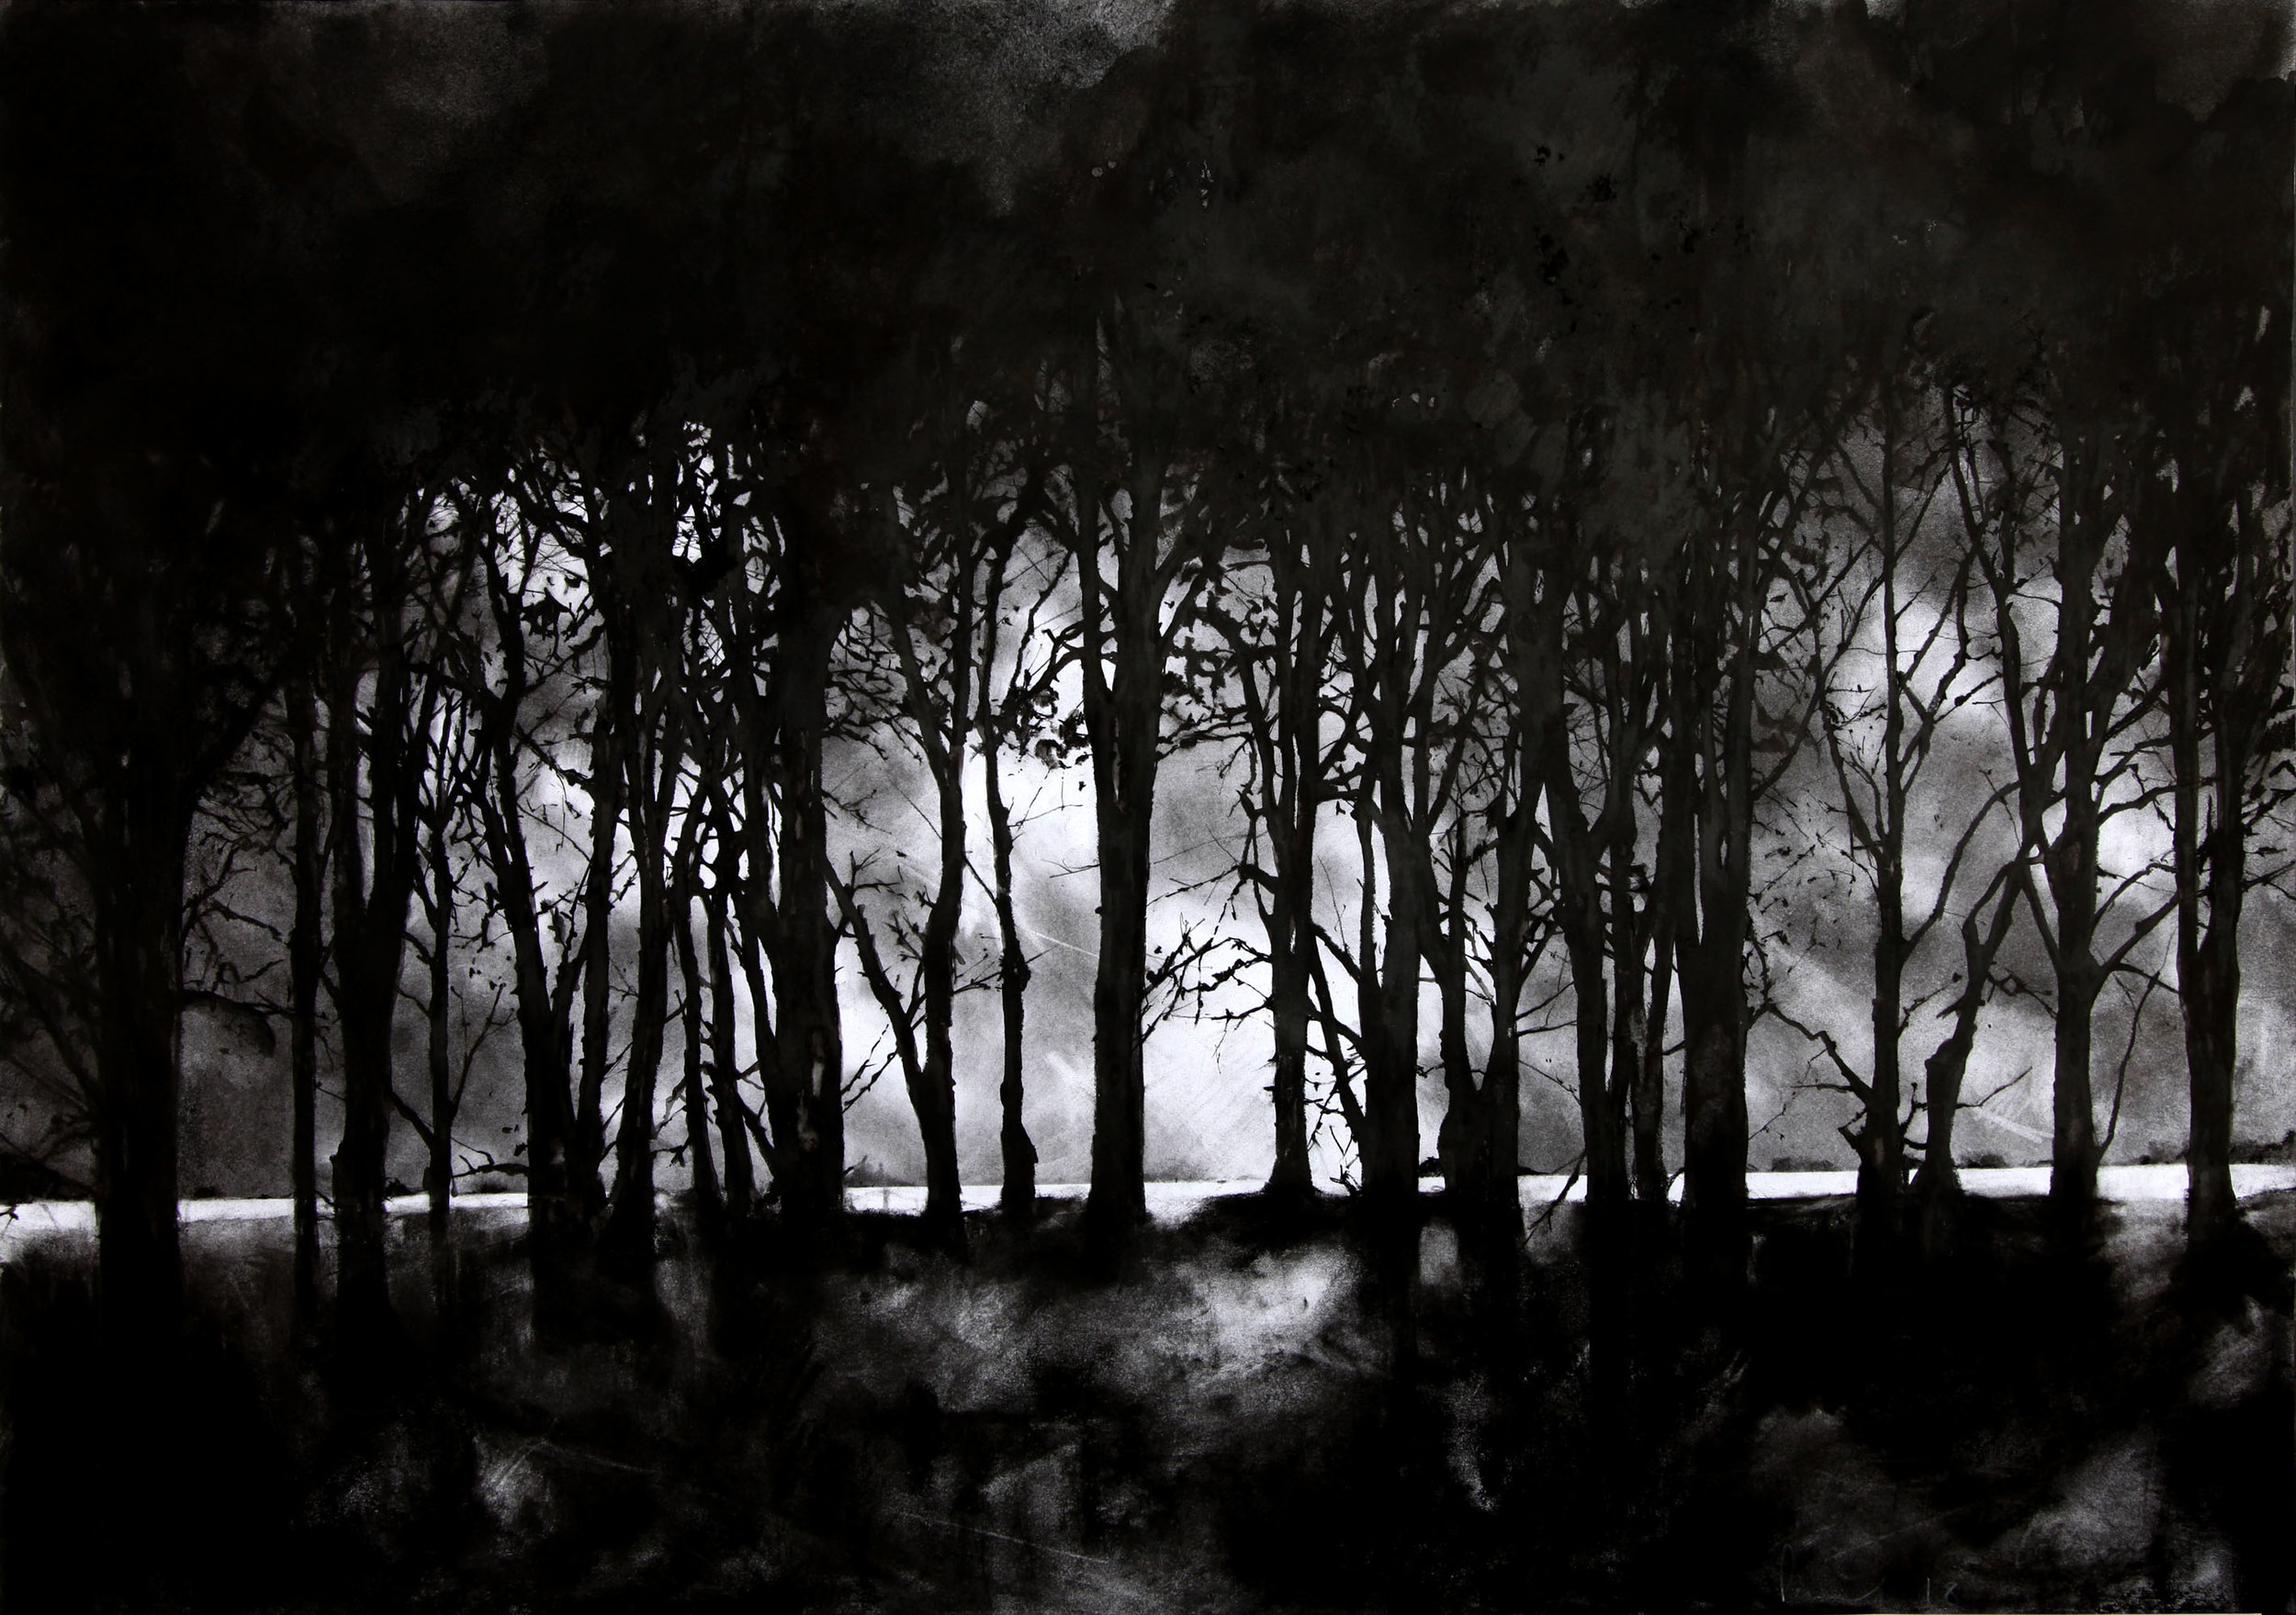 The Forest  2018 | 84 x 60cm Charcoal & compressed charcoal Signed on front  SOLD